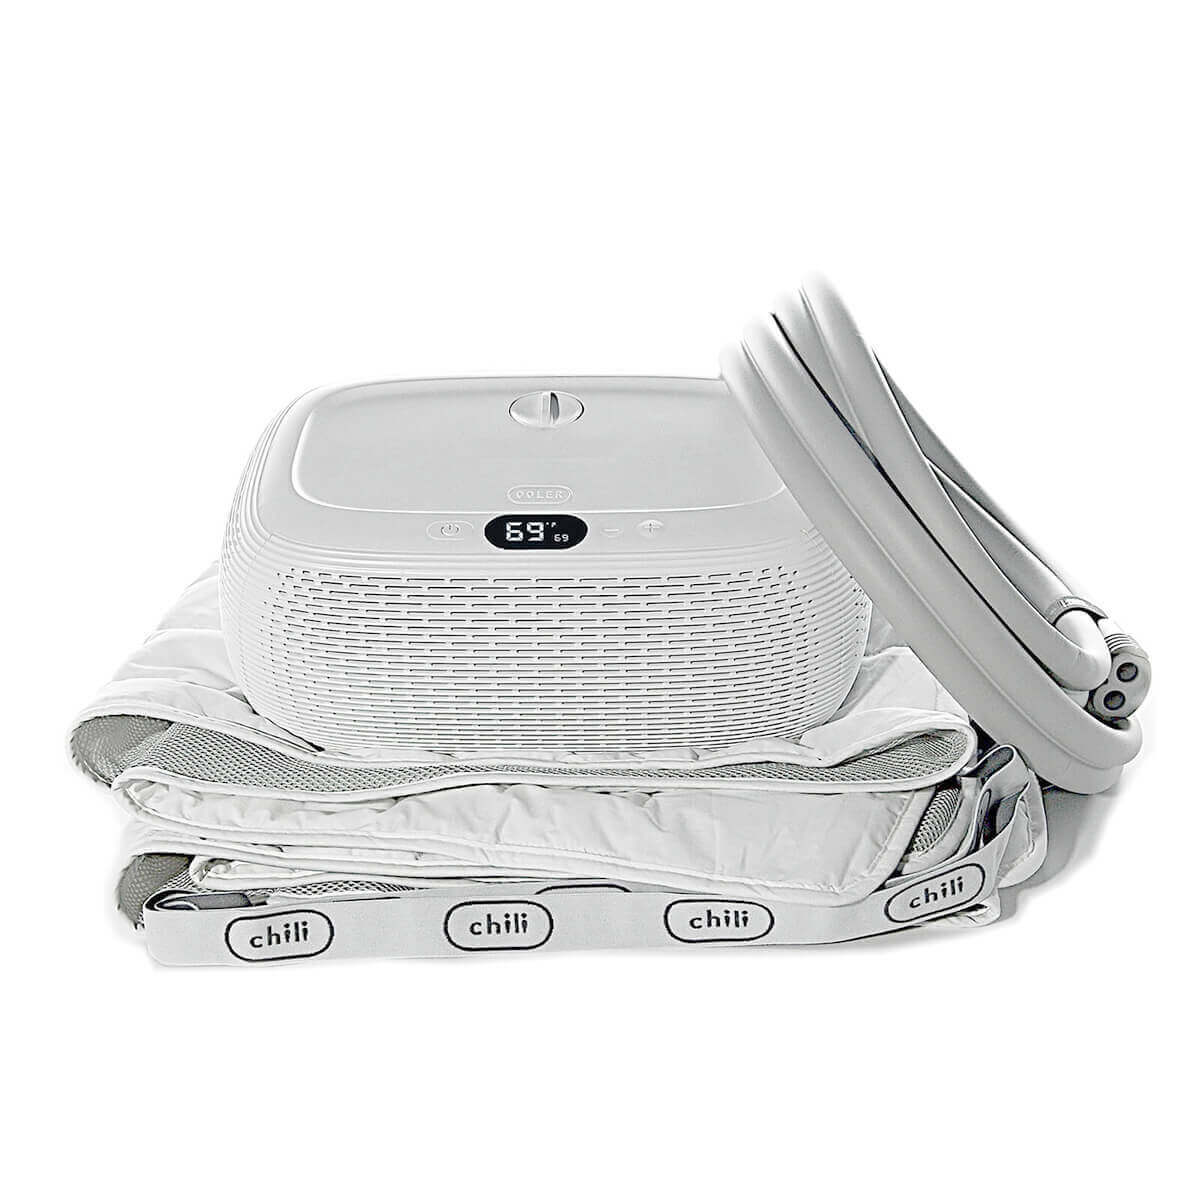 OOLER Sleep System with Chili Cool Mesh